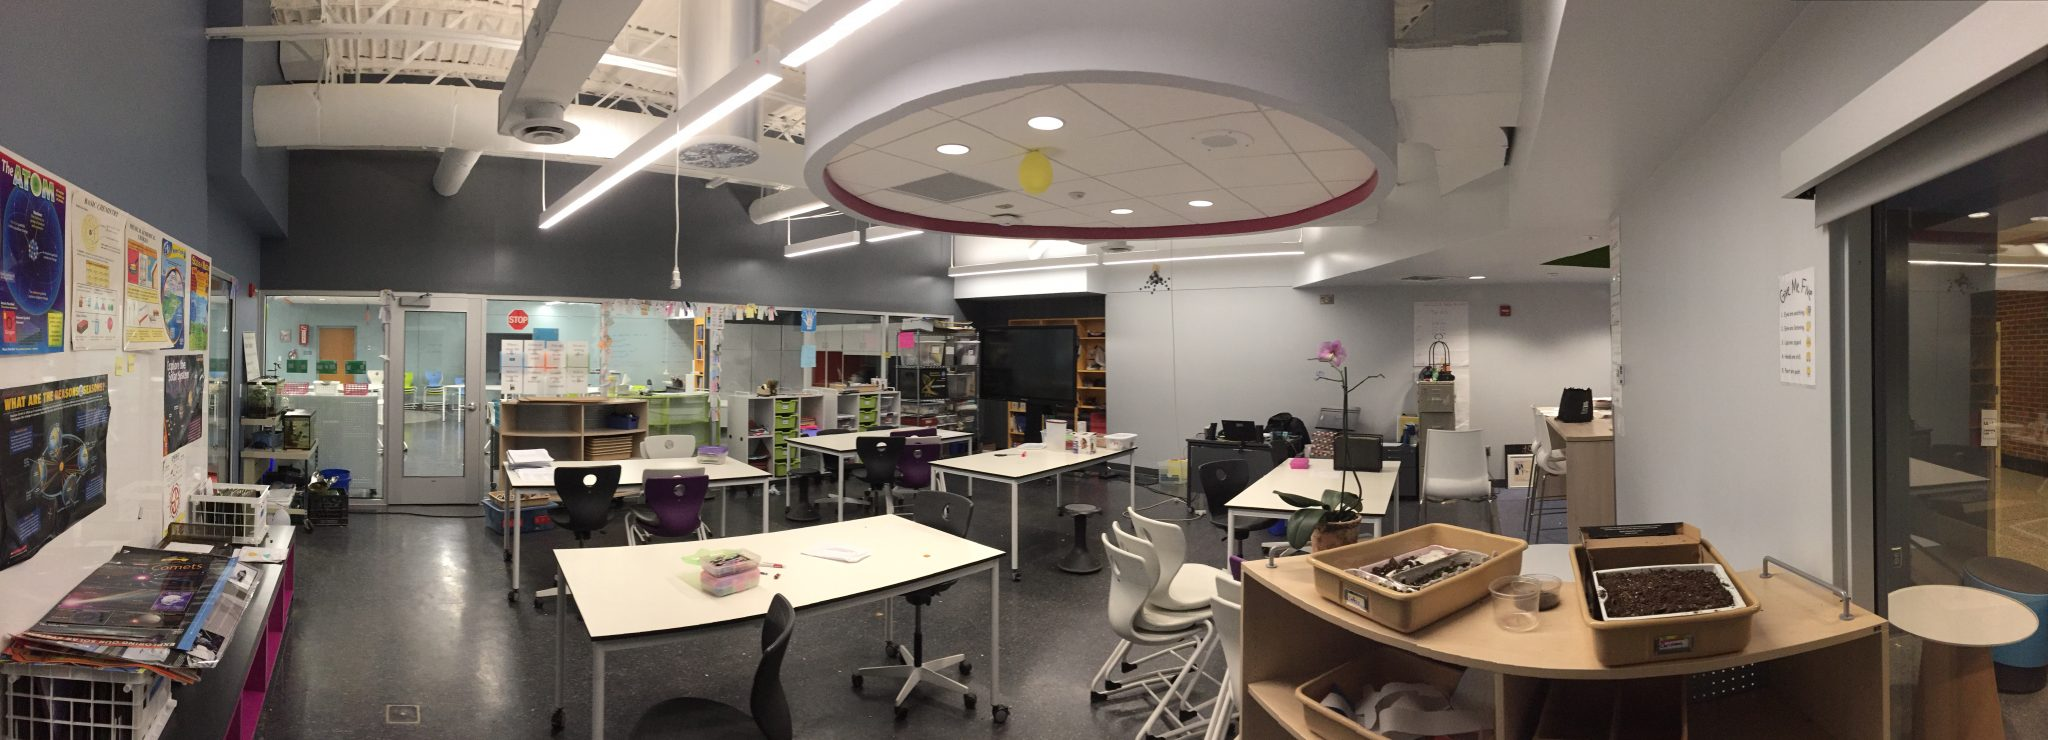 Albemarle County Public Schools Jouett and Walton Middle School Learning Laboratory Modernizations